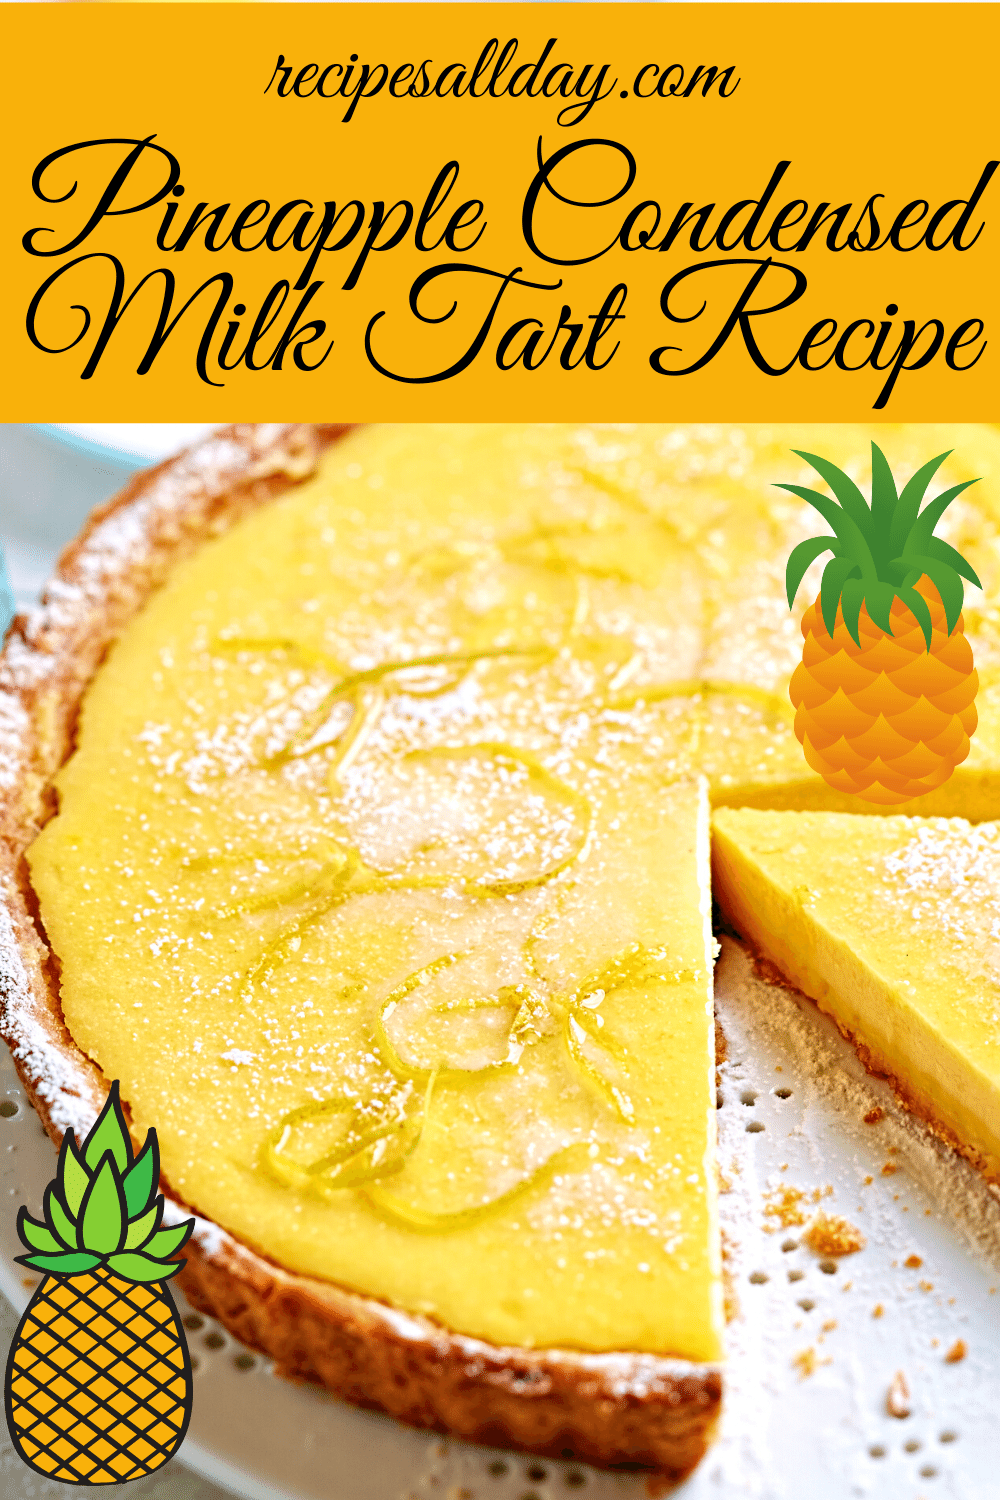 Pineapple Condensed Milk Tart Recipe Recipe In 2020 Tart Recipes Milk Tart Condensed Milk Recipes